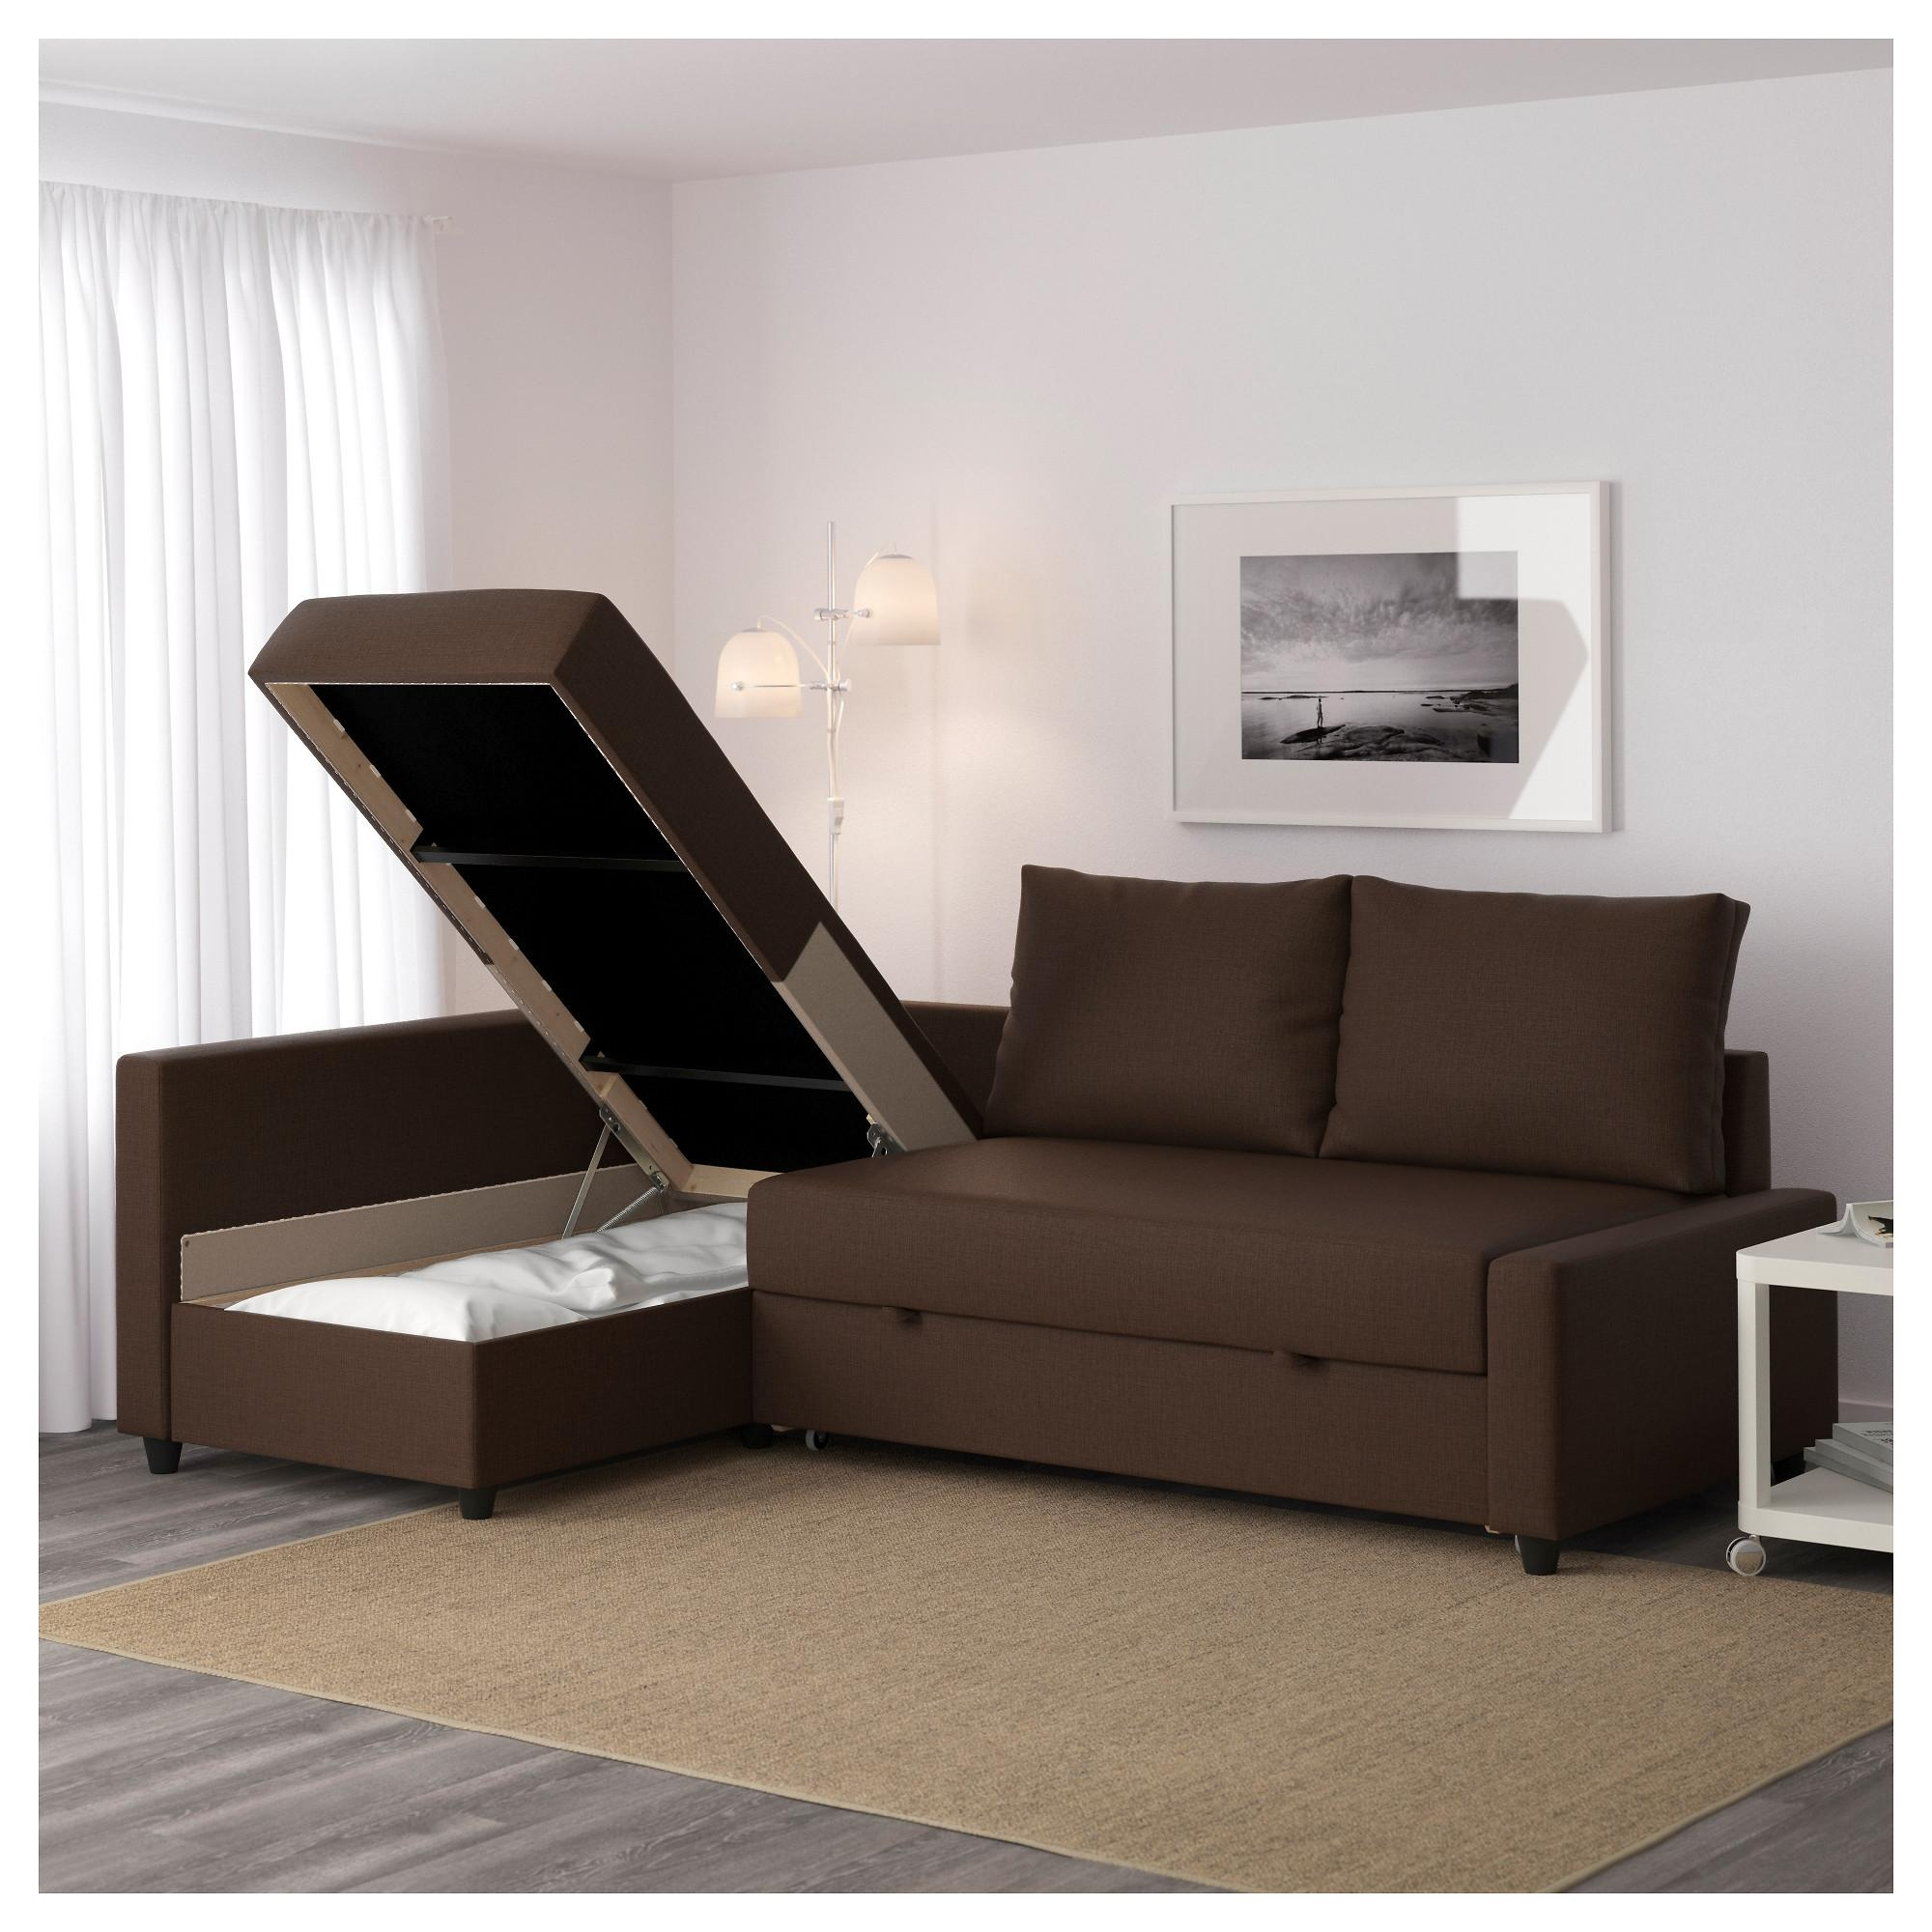 Sofas Center : Enzo Corner Sofa Seater Pull Out Chaise On Right For Chaise Sofa Beds With Storage (View 19 of 20)